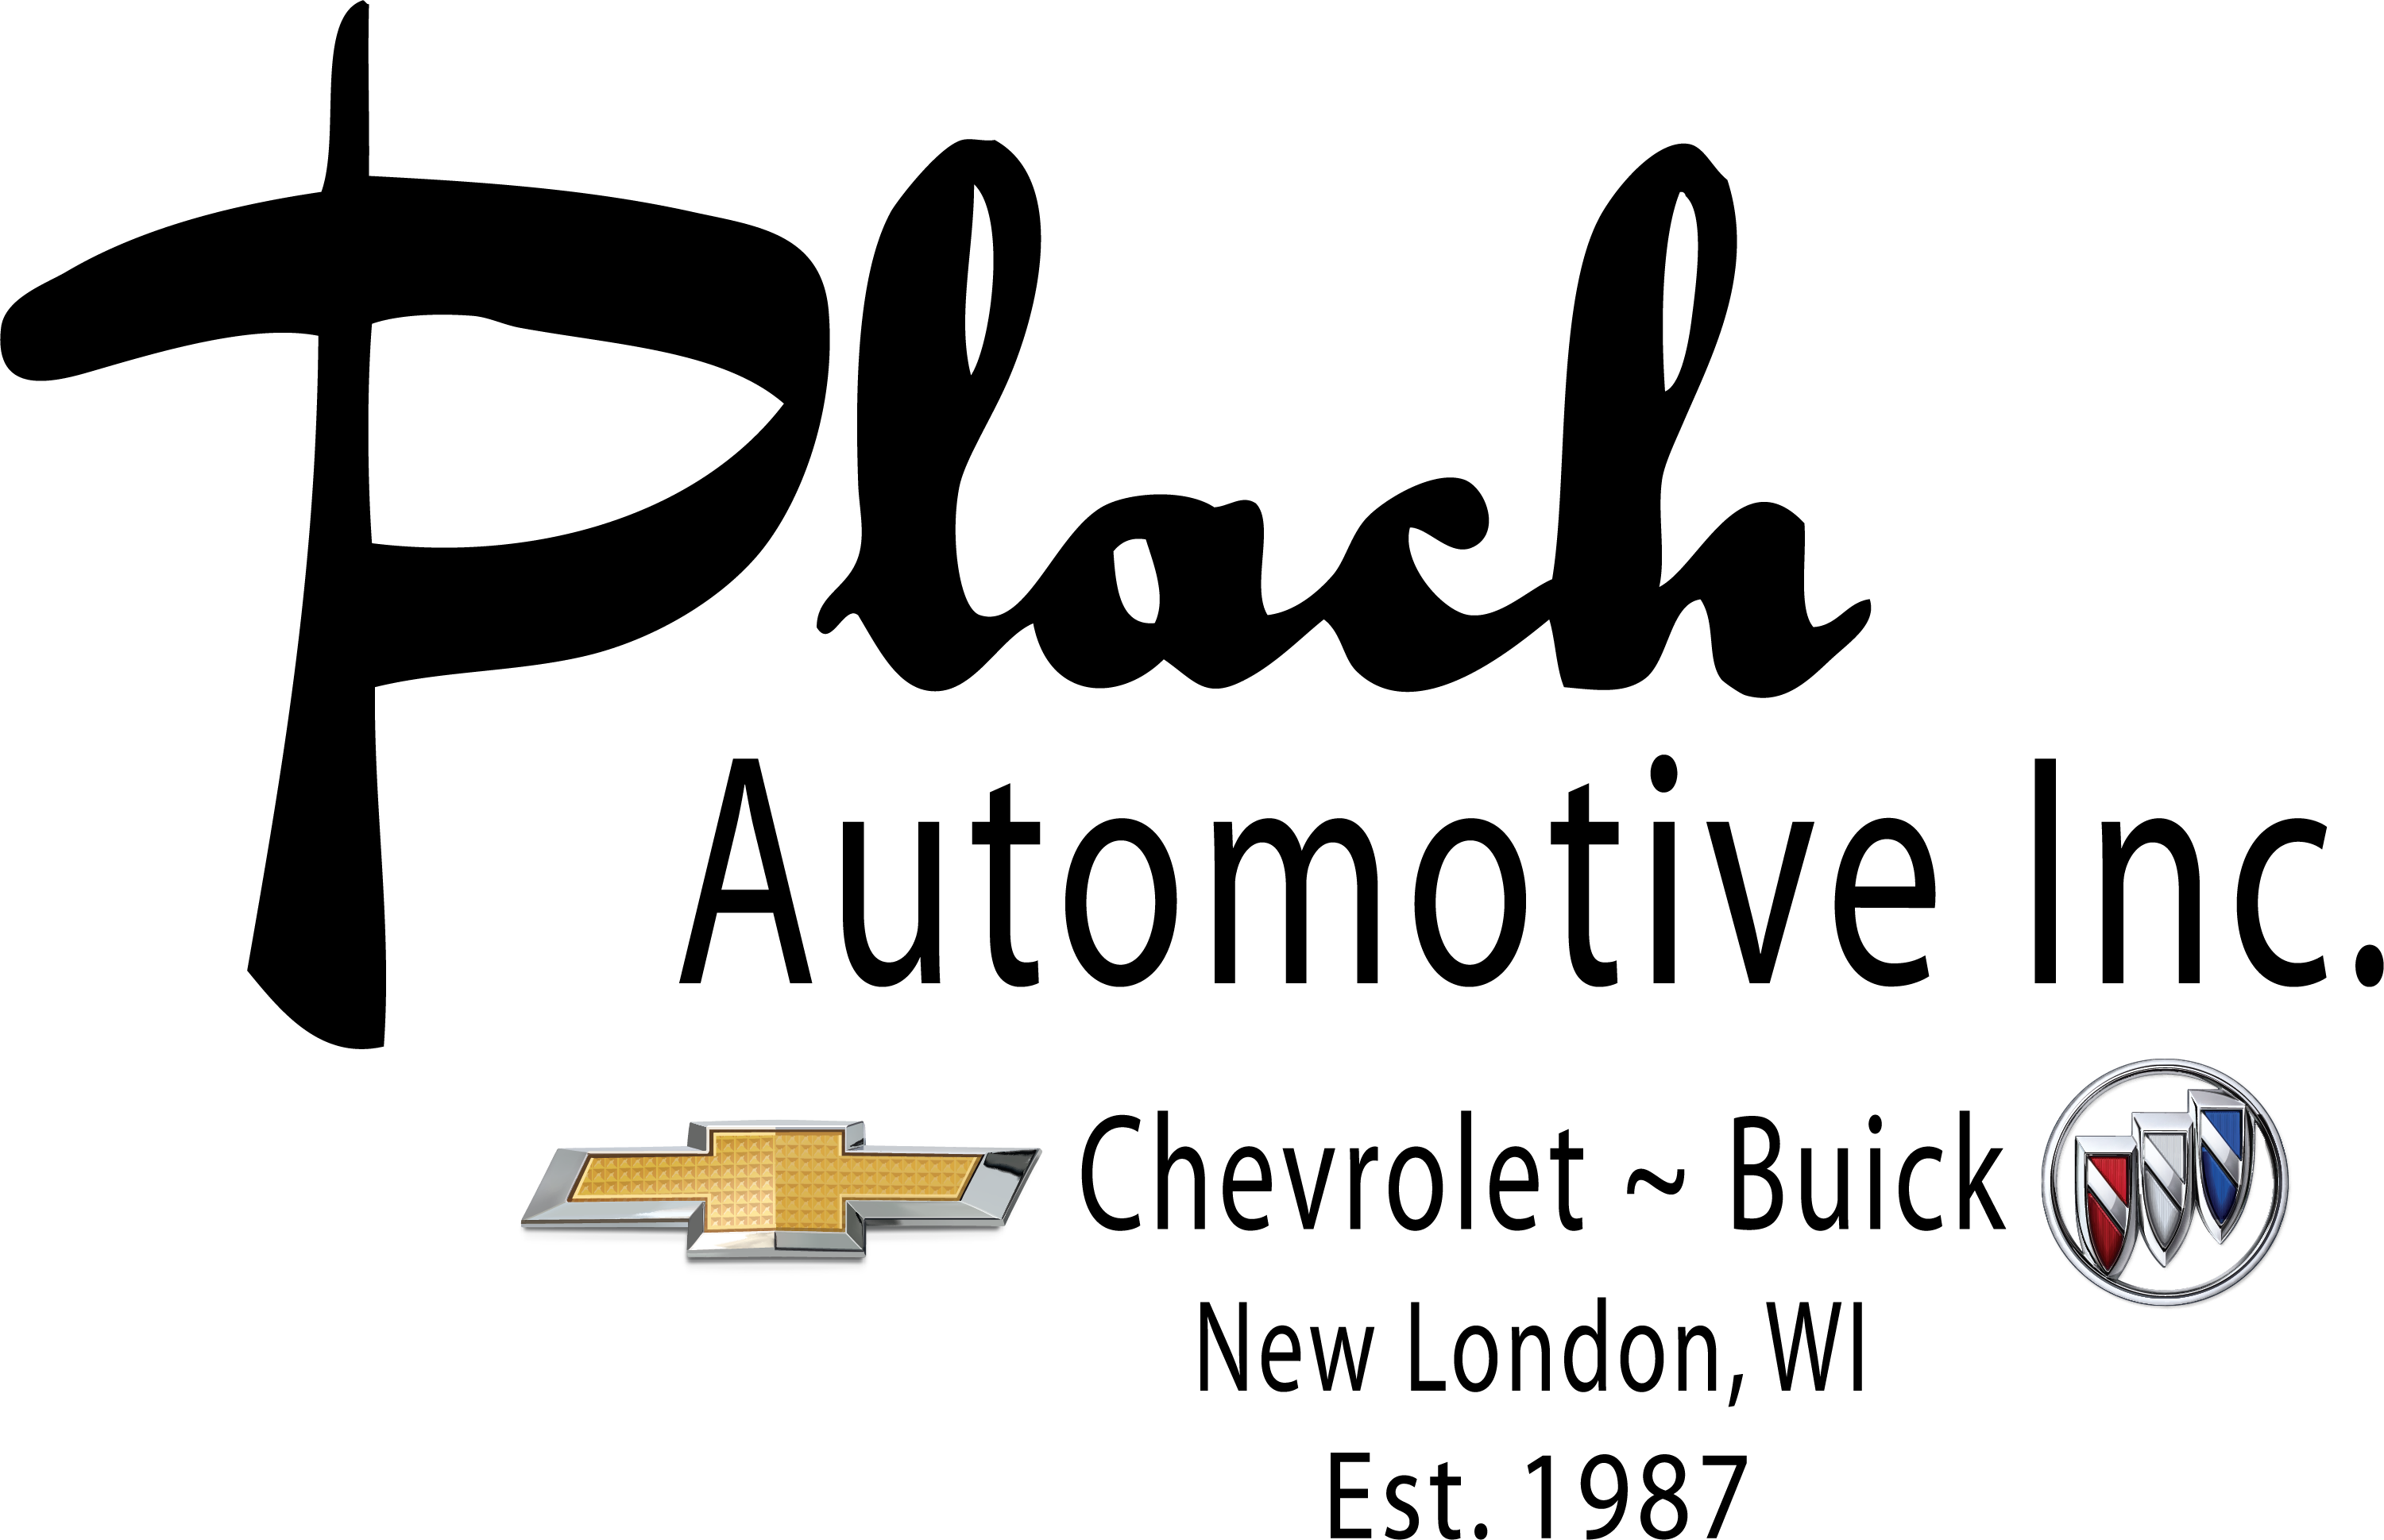 Plach Automotive logo